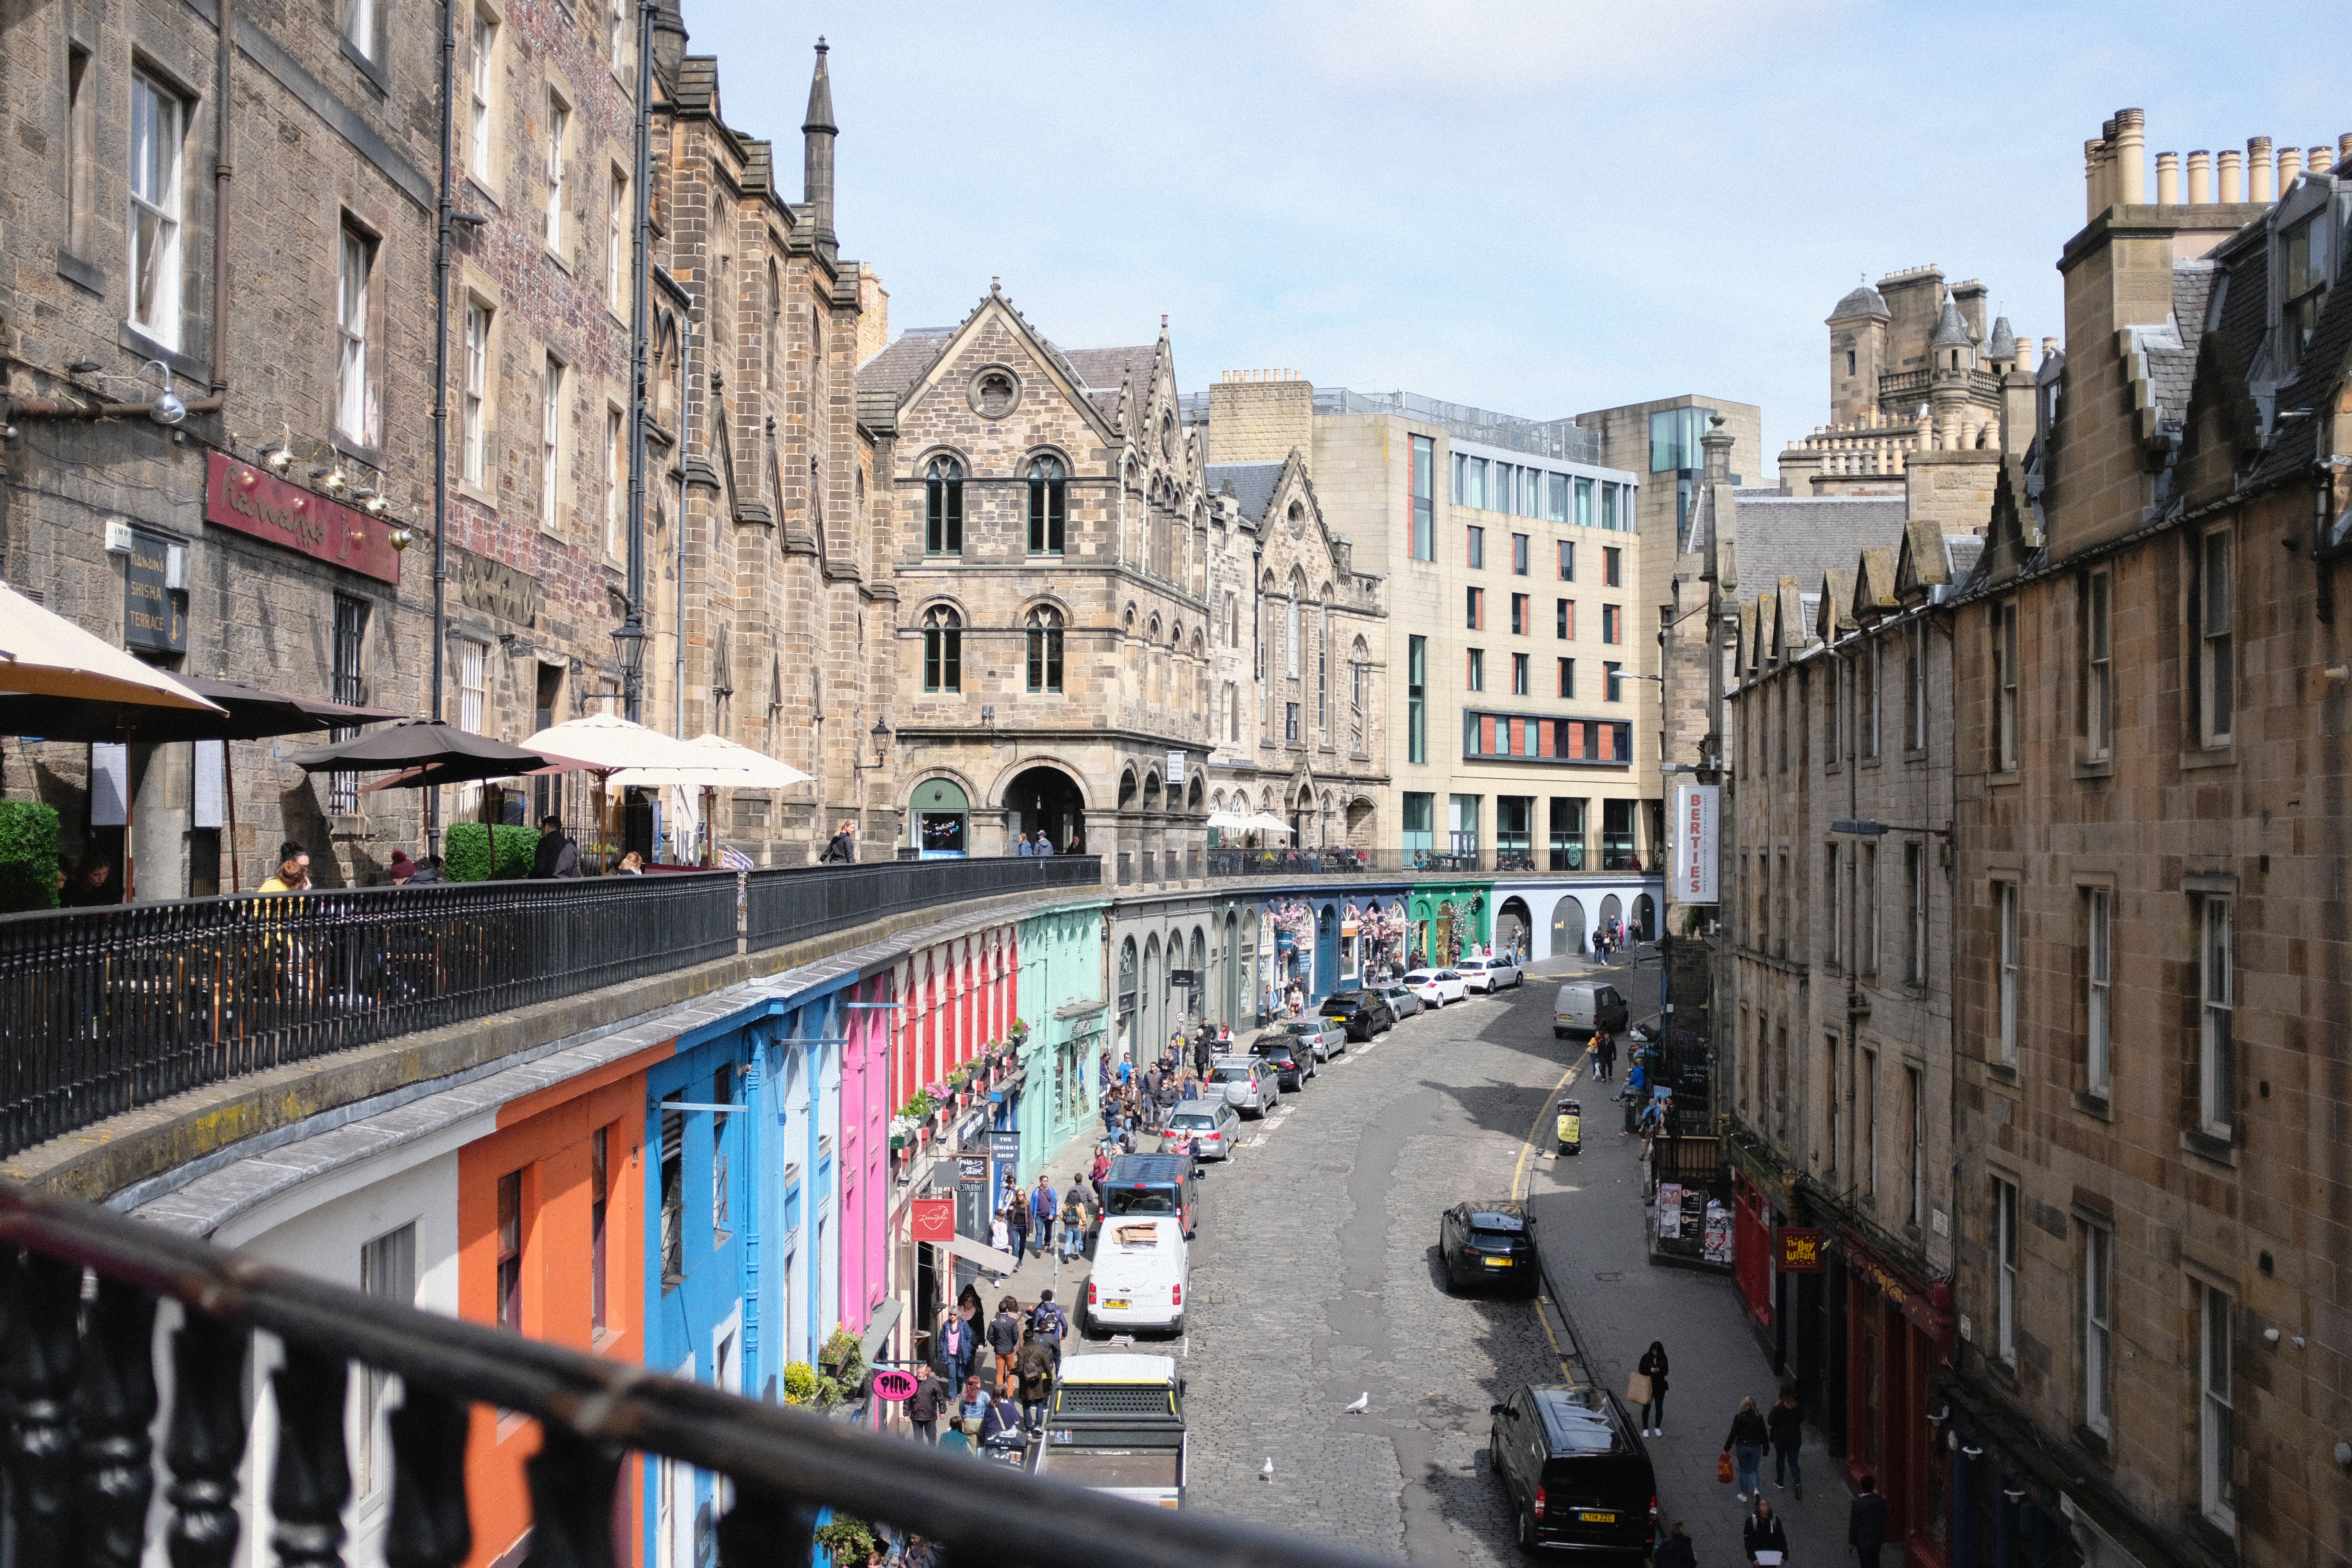 Foto: Colorful Victoria Street In Edinburgh By Madeleine Kohler On Unsplash.